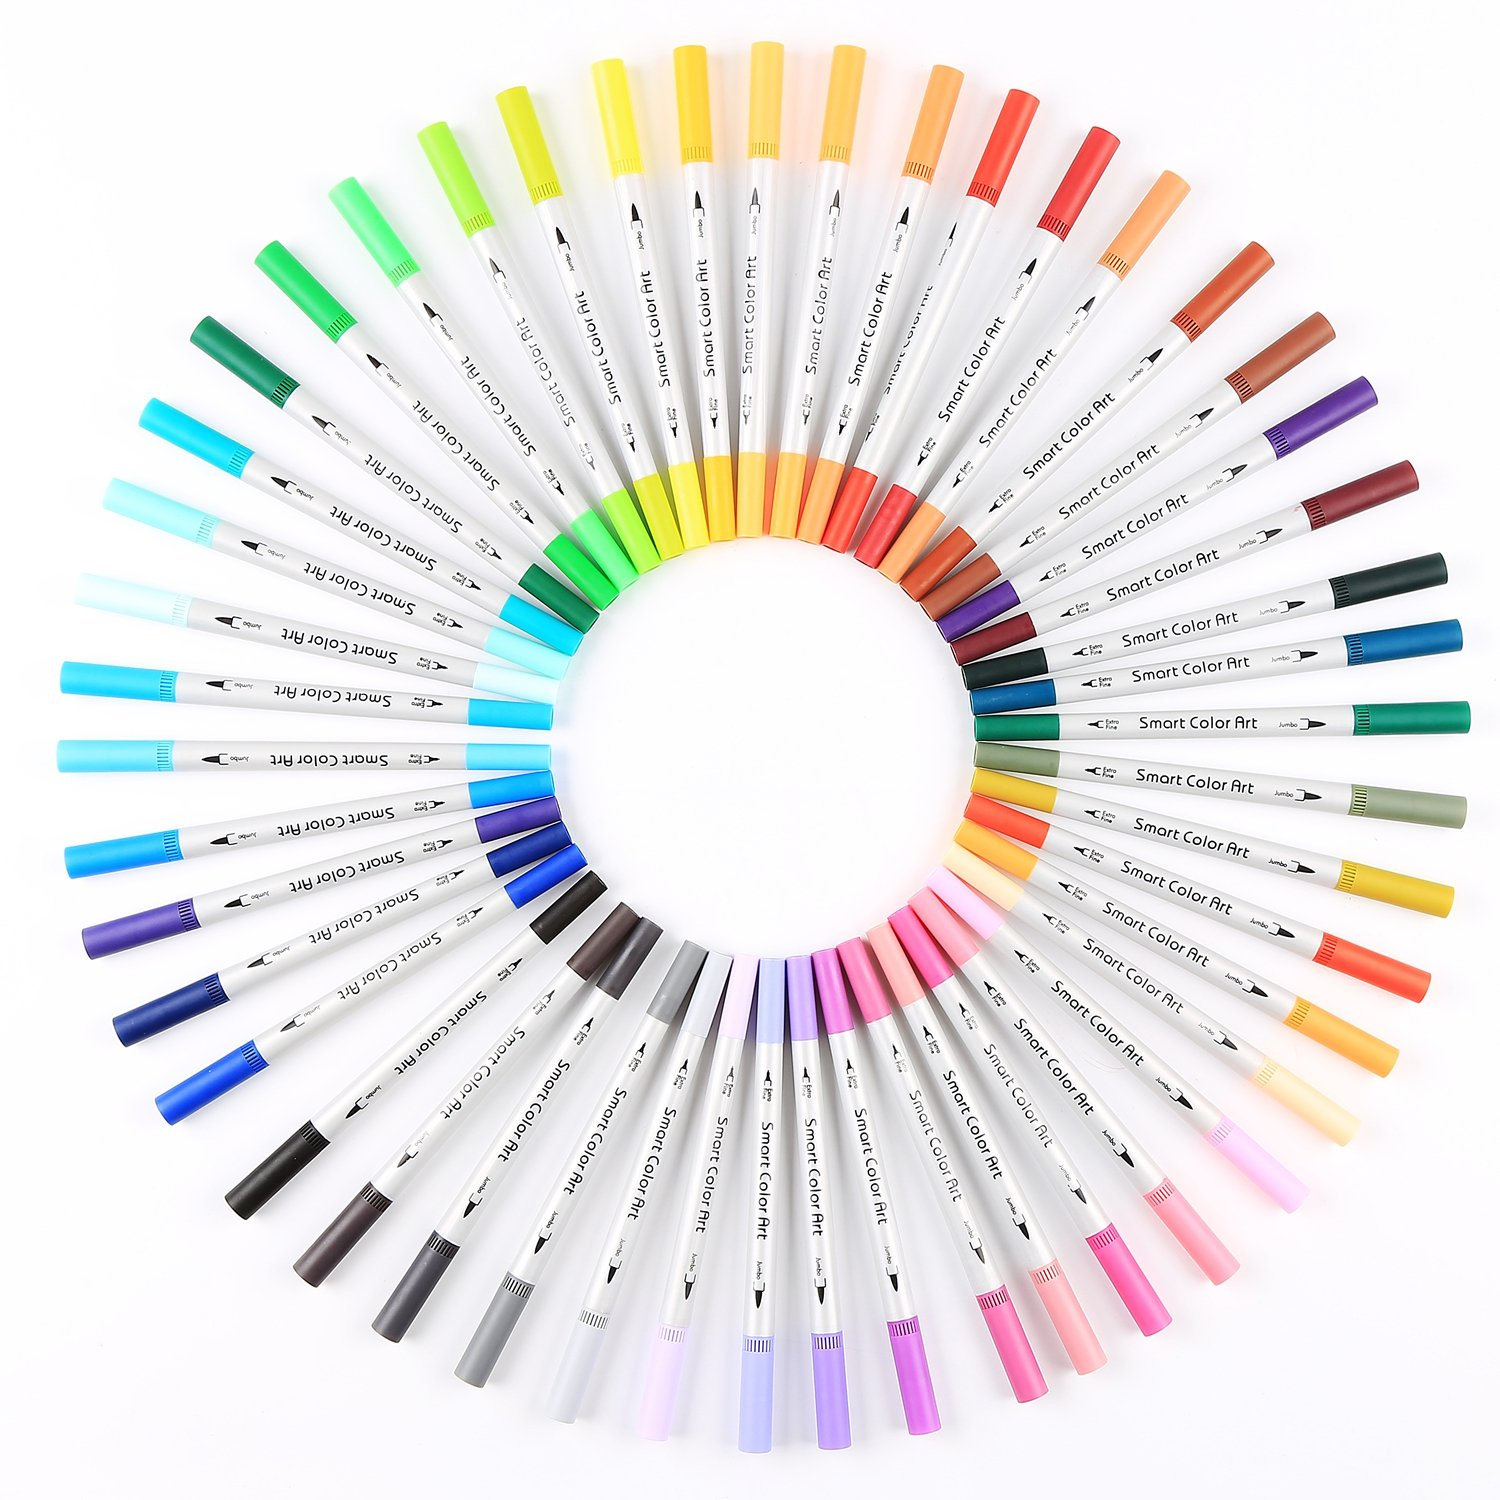 Color art st louis mo - Amazon Com Smart Color Art Dual Tip Brush Pens With Fineliner Tip 0 4 Art Markers 48 Unique Colors